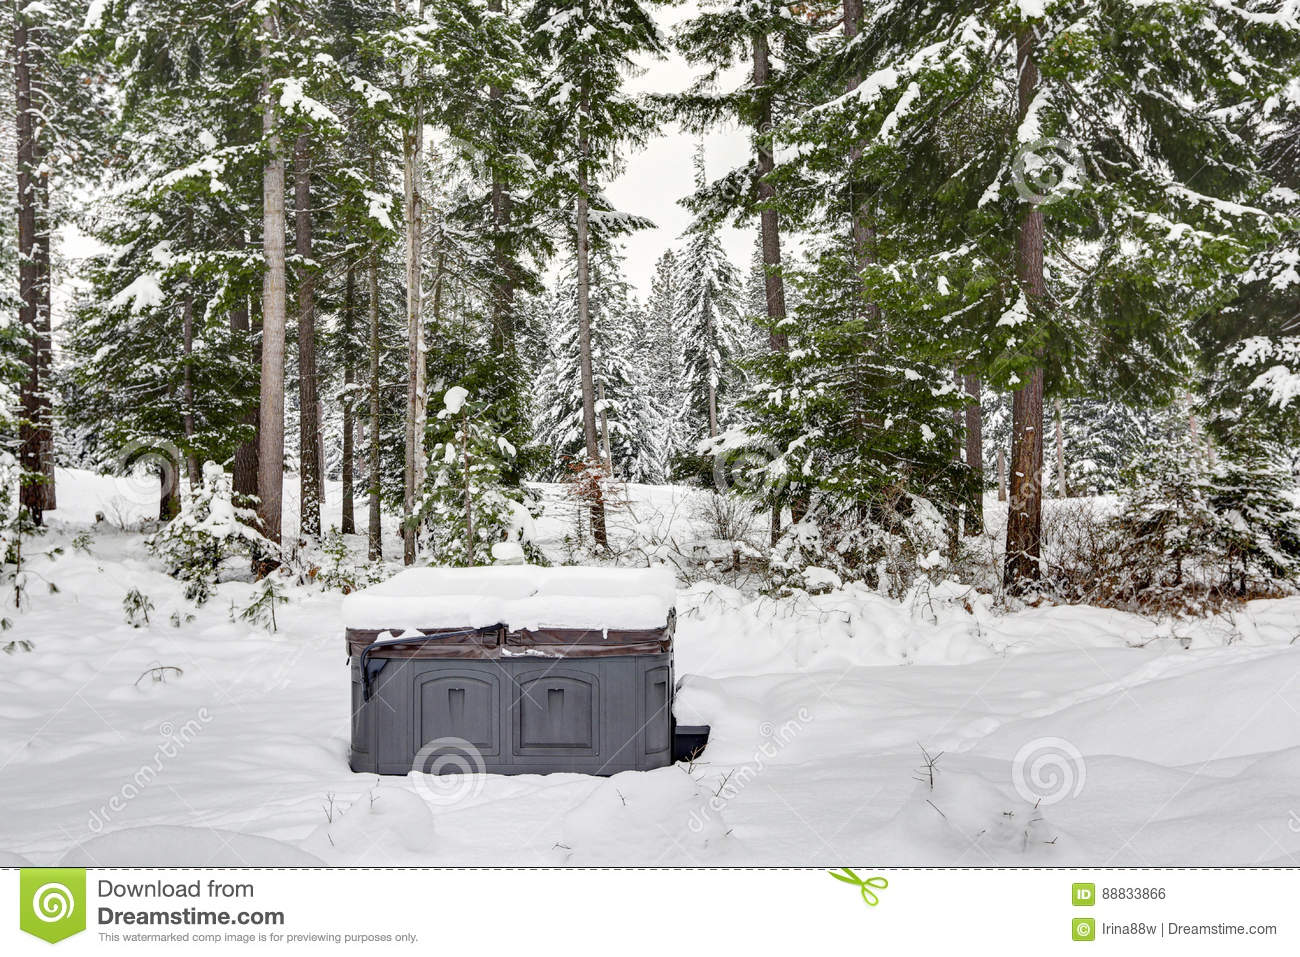 Download Covered Outdoor Hot Tub Surrounded By Snow Stock Photo - Image of deck, area: 88833866